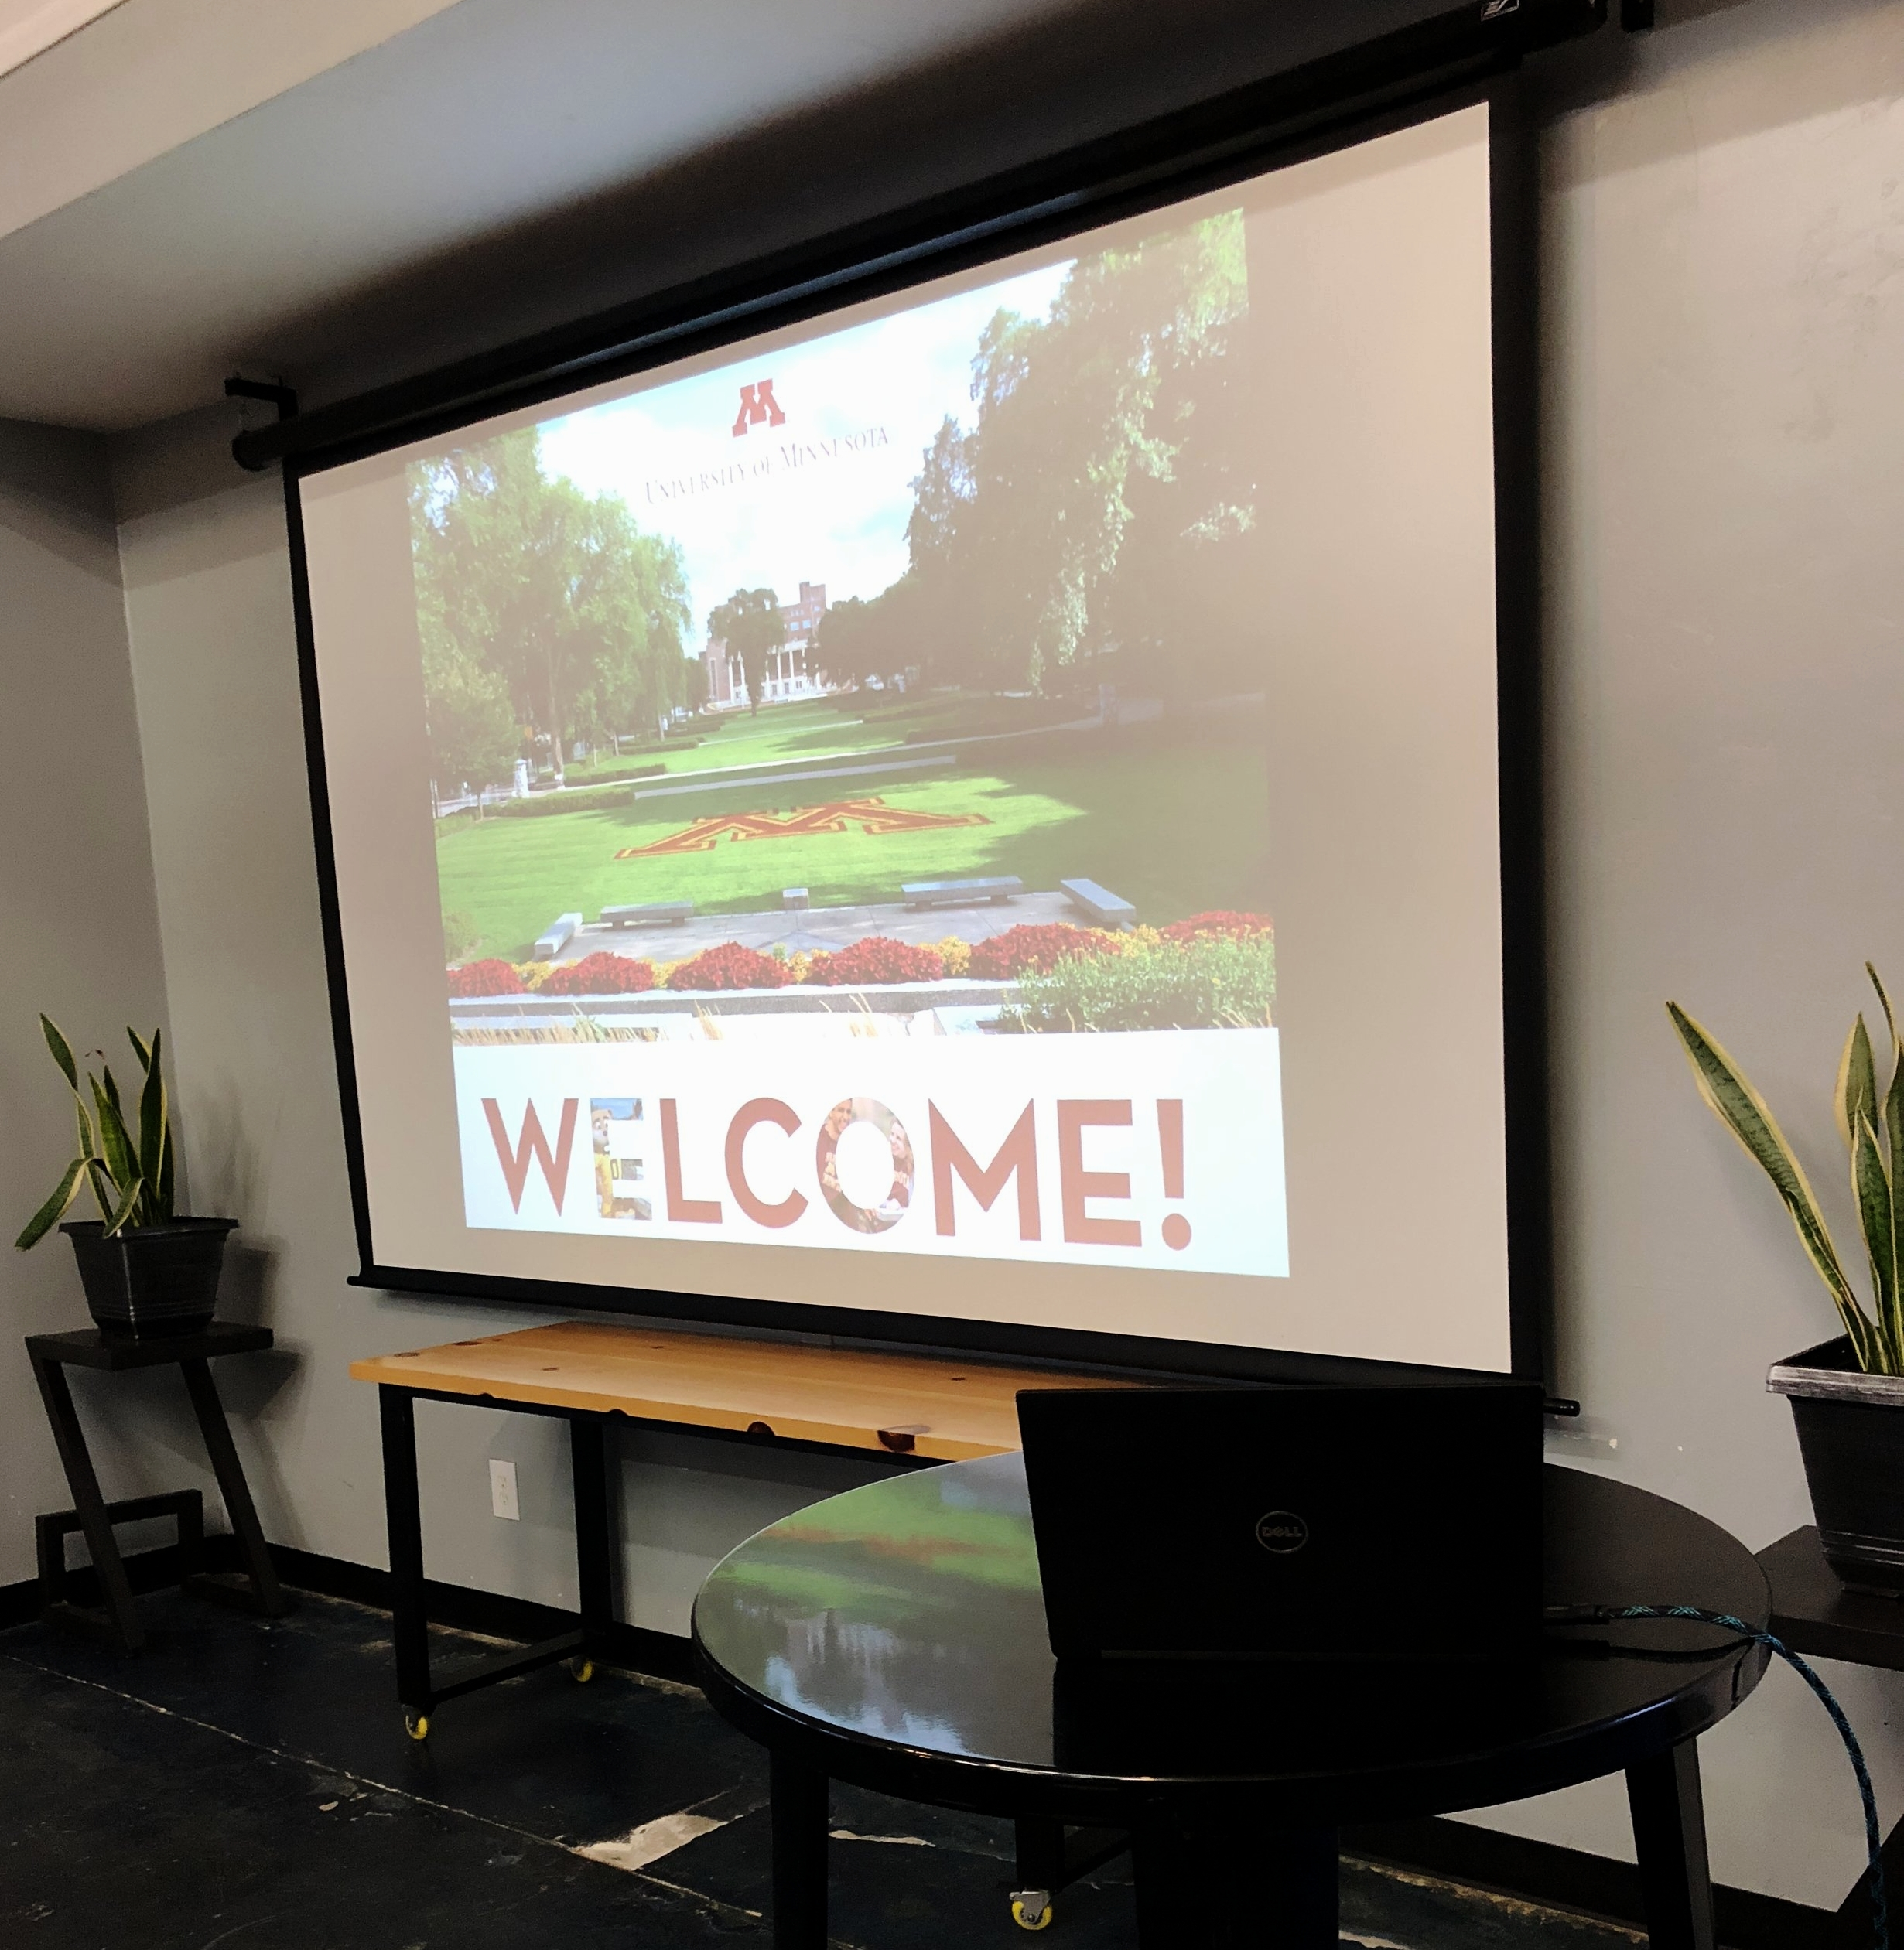 We have a large projector screen with HDMI capabilities, and seven tv screens to display your message .